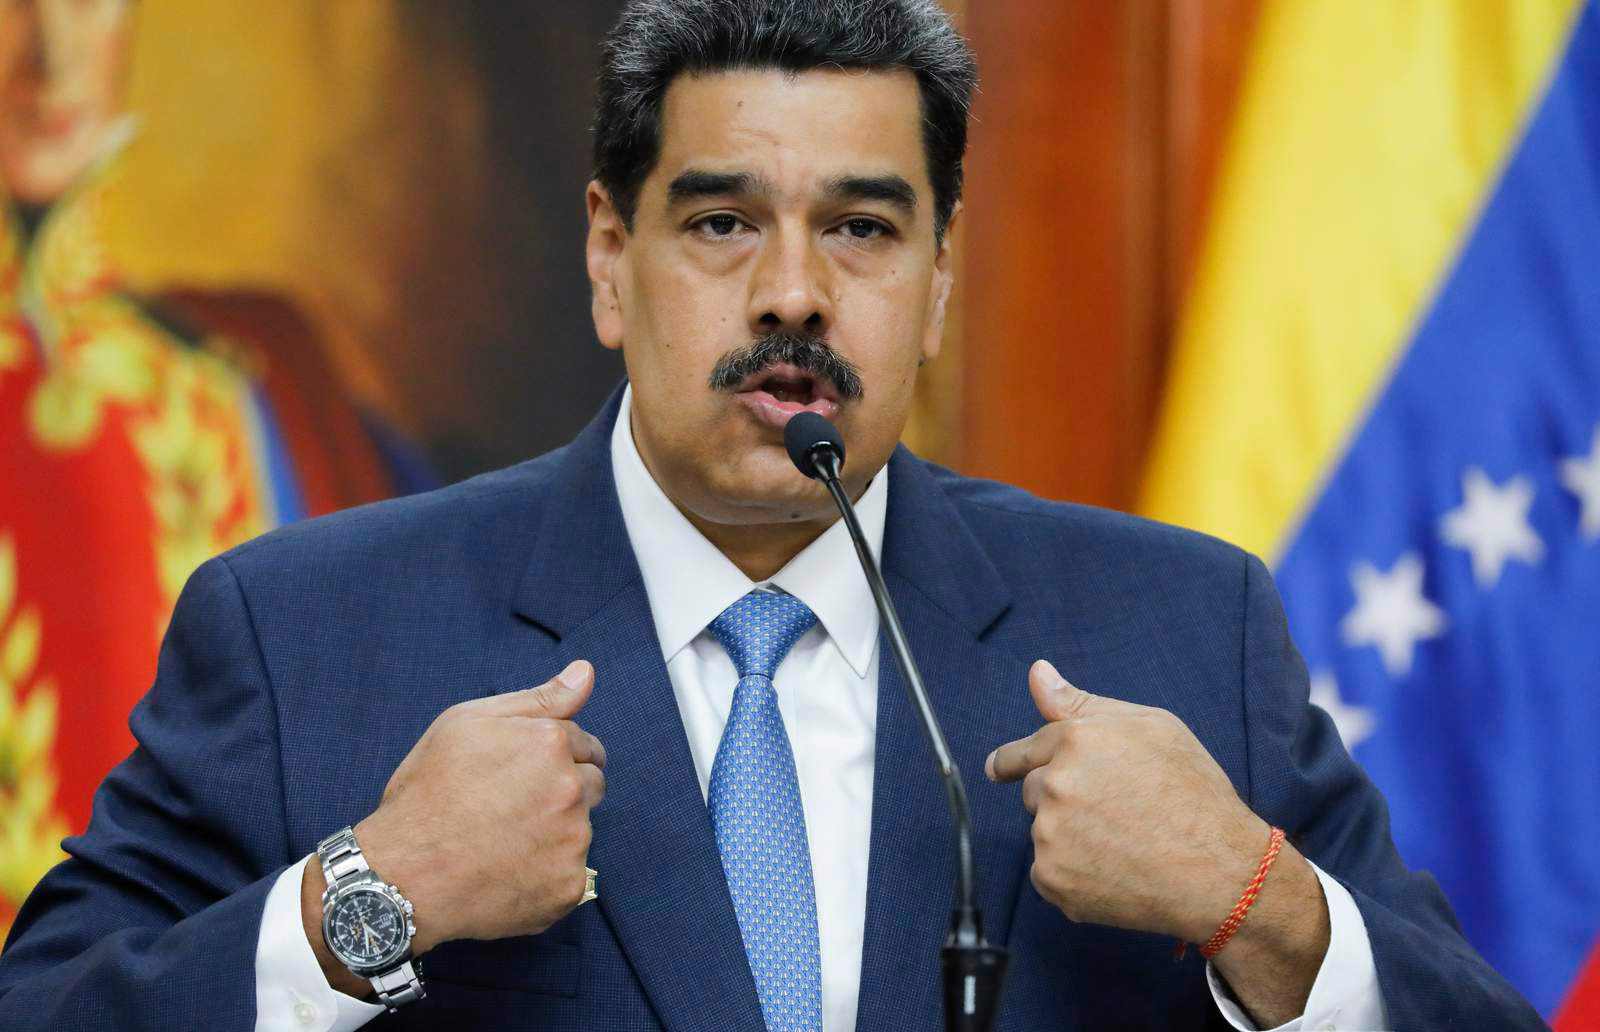 The President Of Venezuela Announced The Beginning Of A New Phase Of Military Exercises